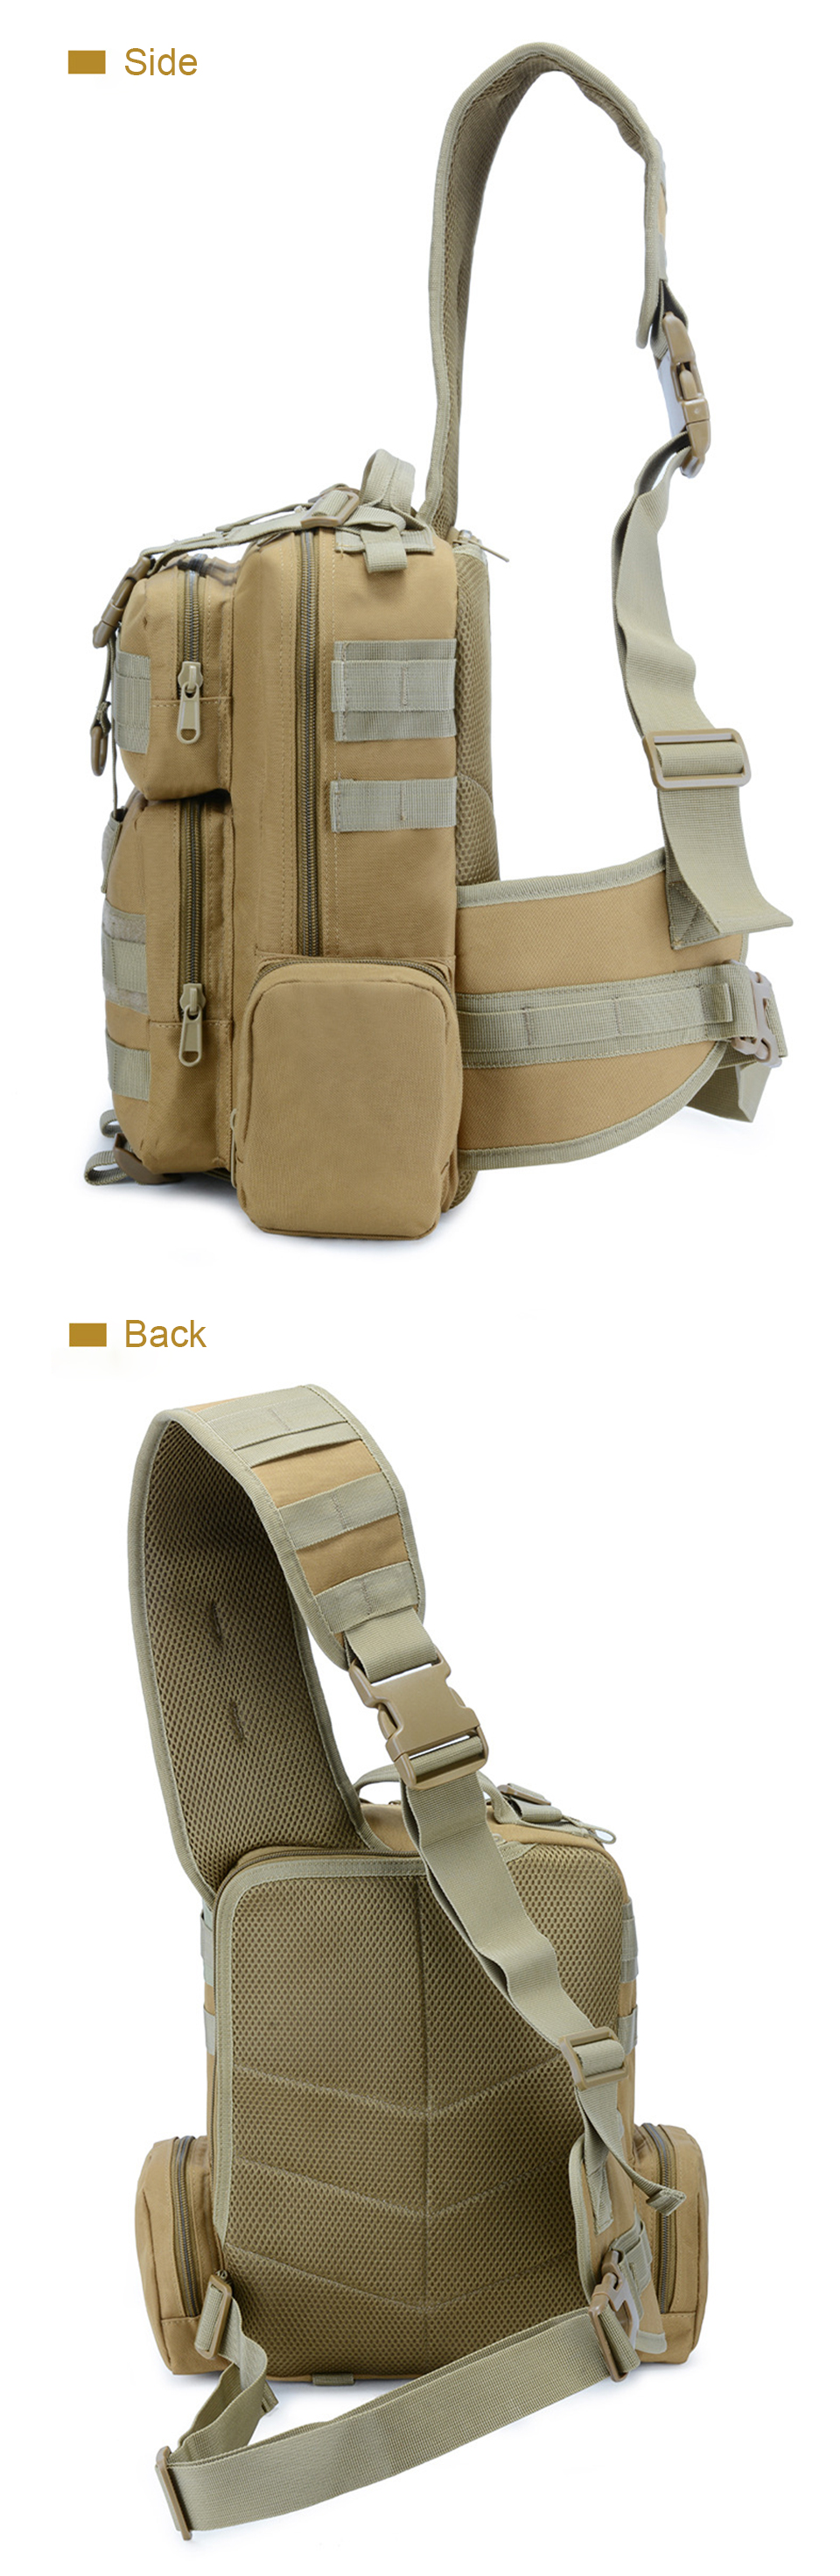 Outdoor-Sports-Military-Bag-Tactical-Bags-Climbing-Shoulder-Bag-Camping-Hiking-Hunting-Chest-Daypack-Molle-Camouflage-Backpack_09